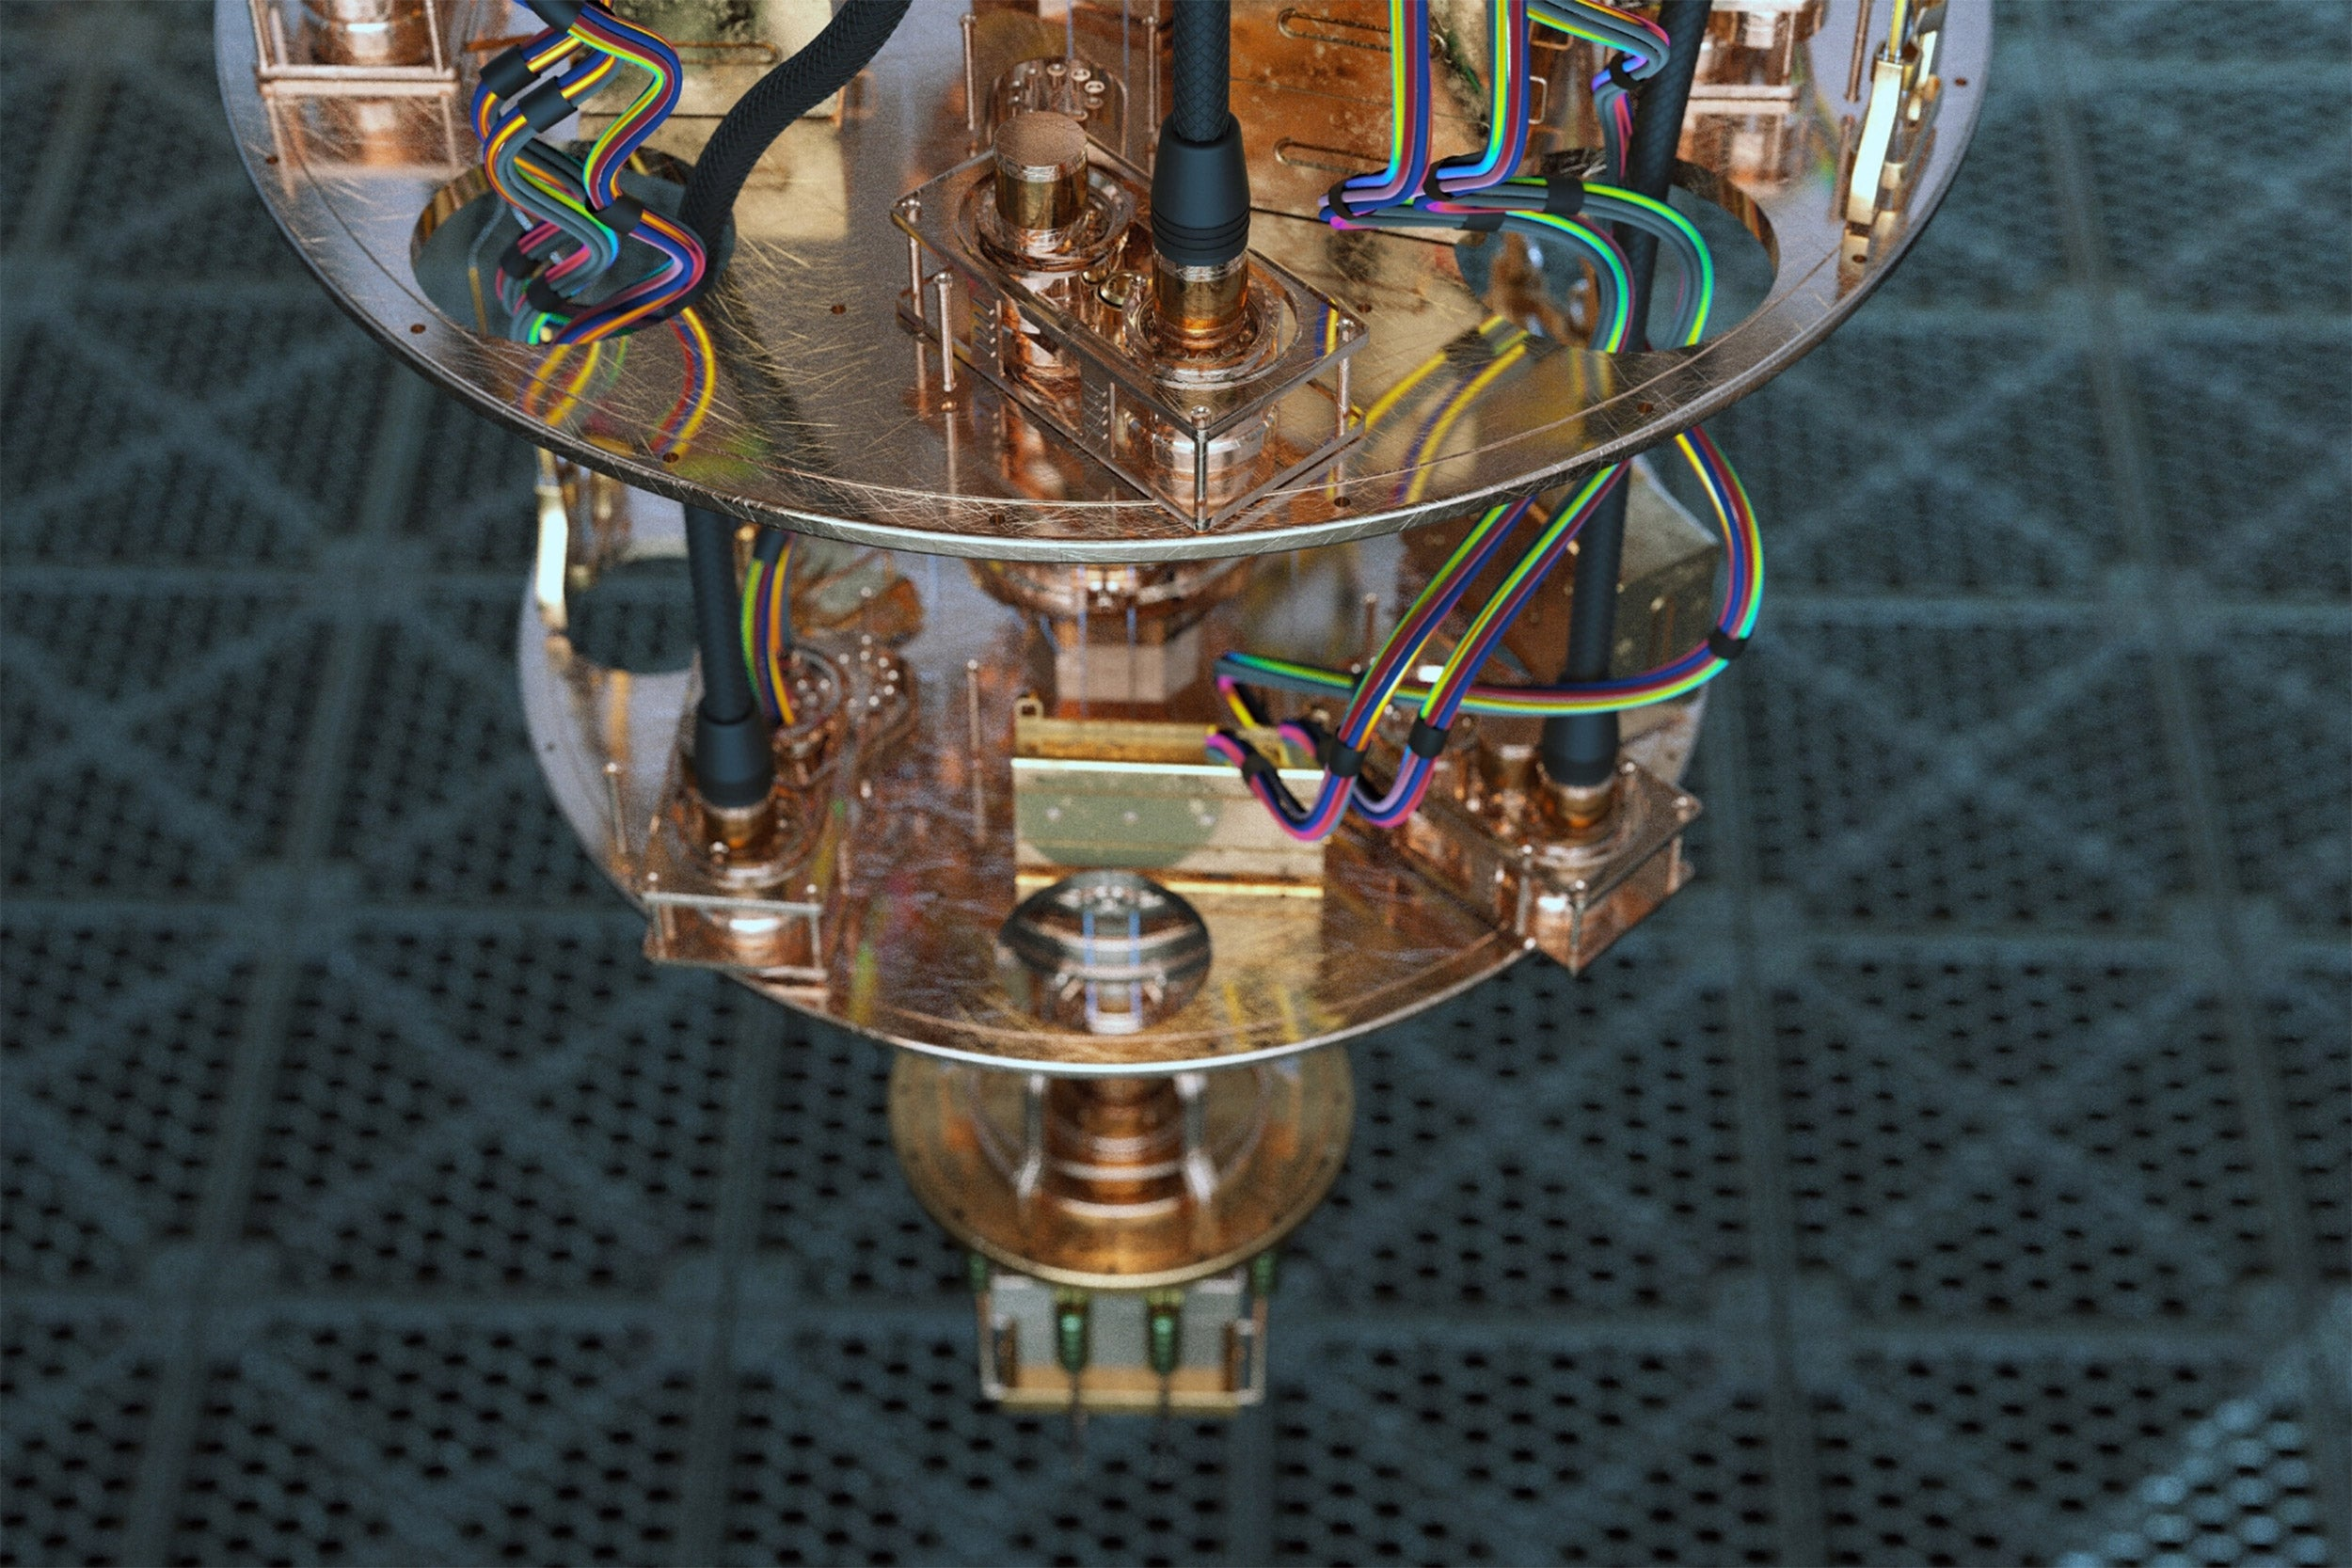 A close up view of a quantum computer.